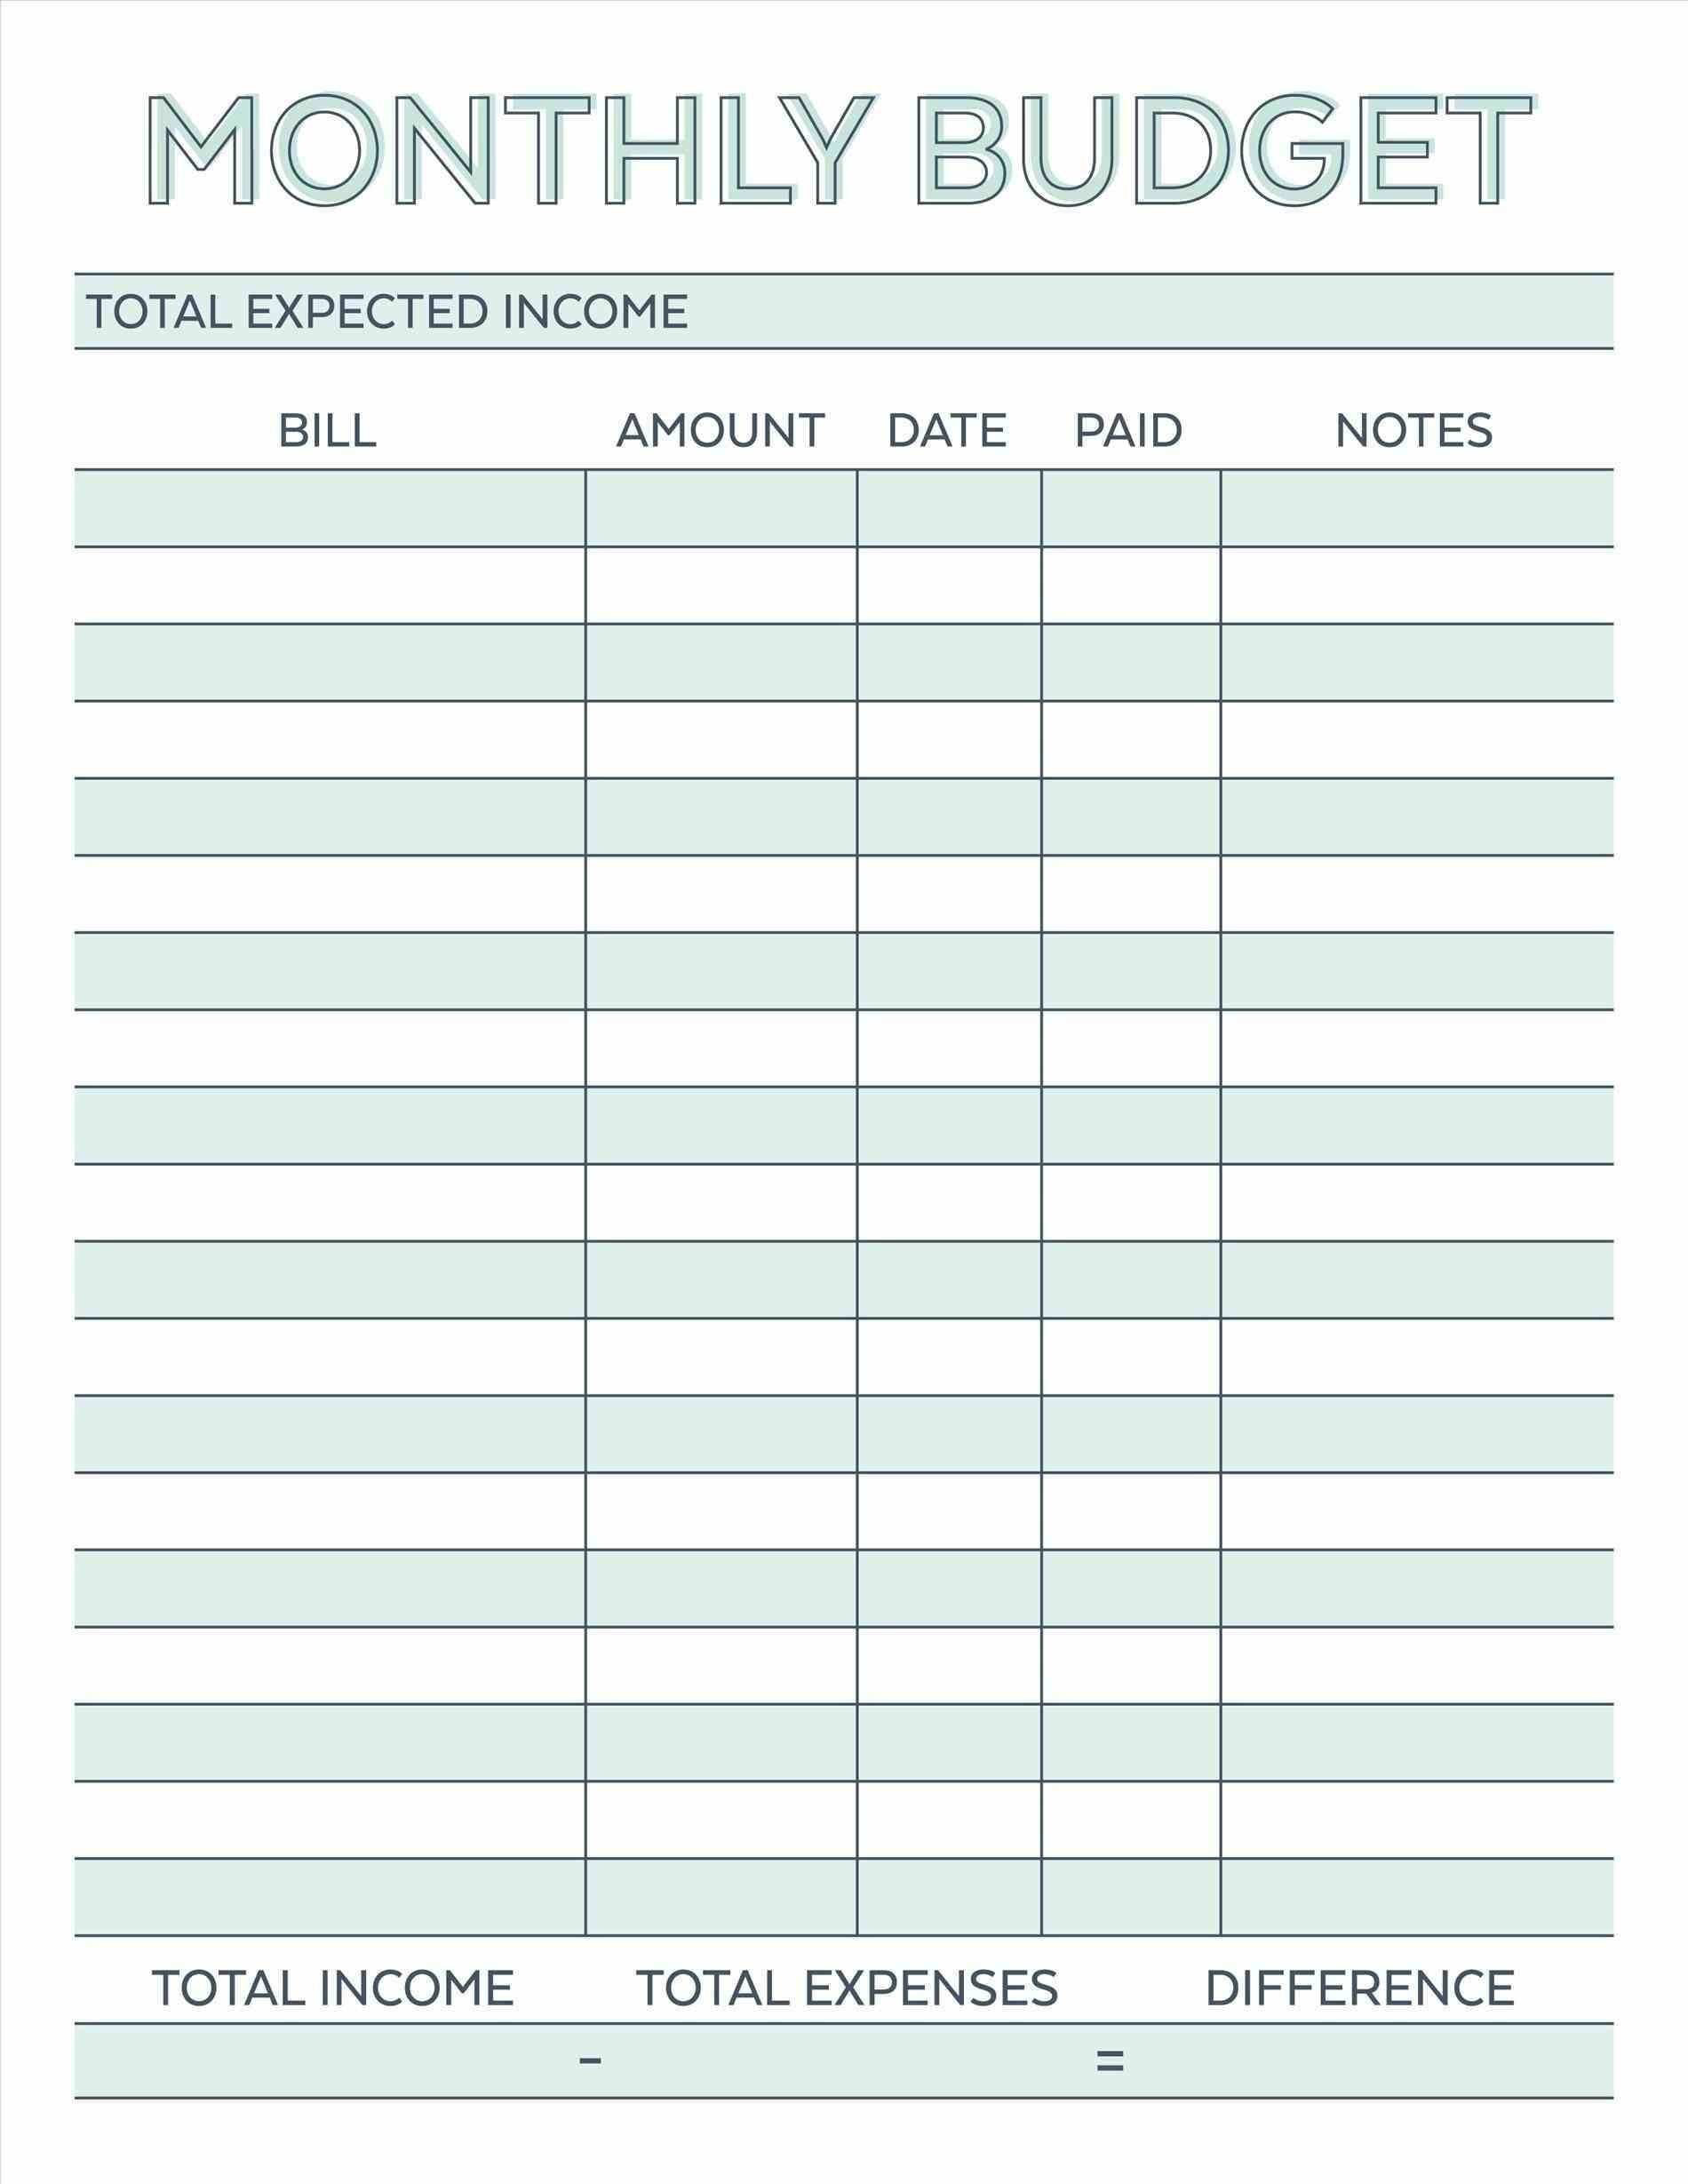 Budget Planner Planner Worksheet Monthly Bills Template Free-Blank Printable Monthly Bill Pay Worksheet